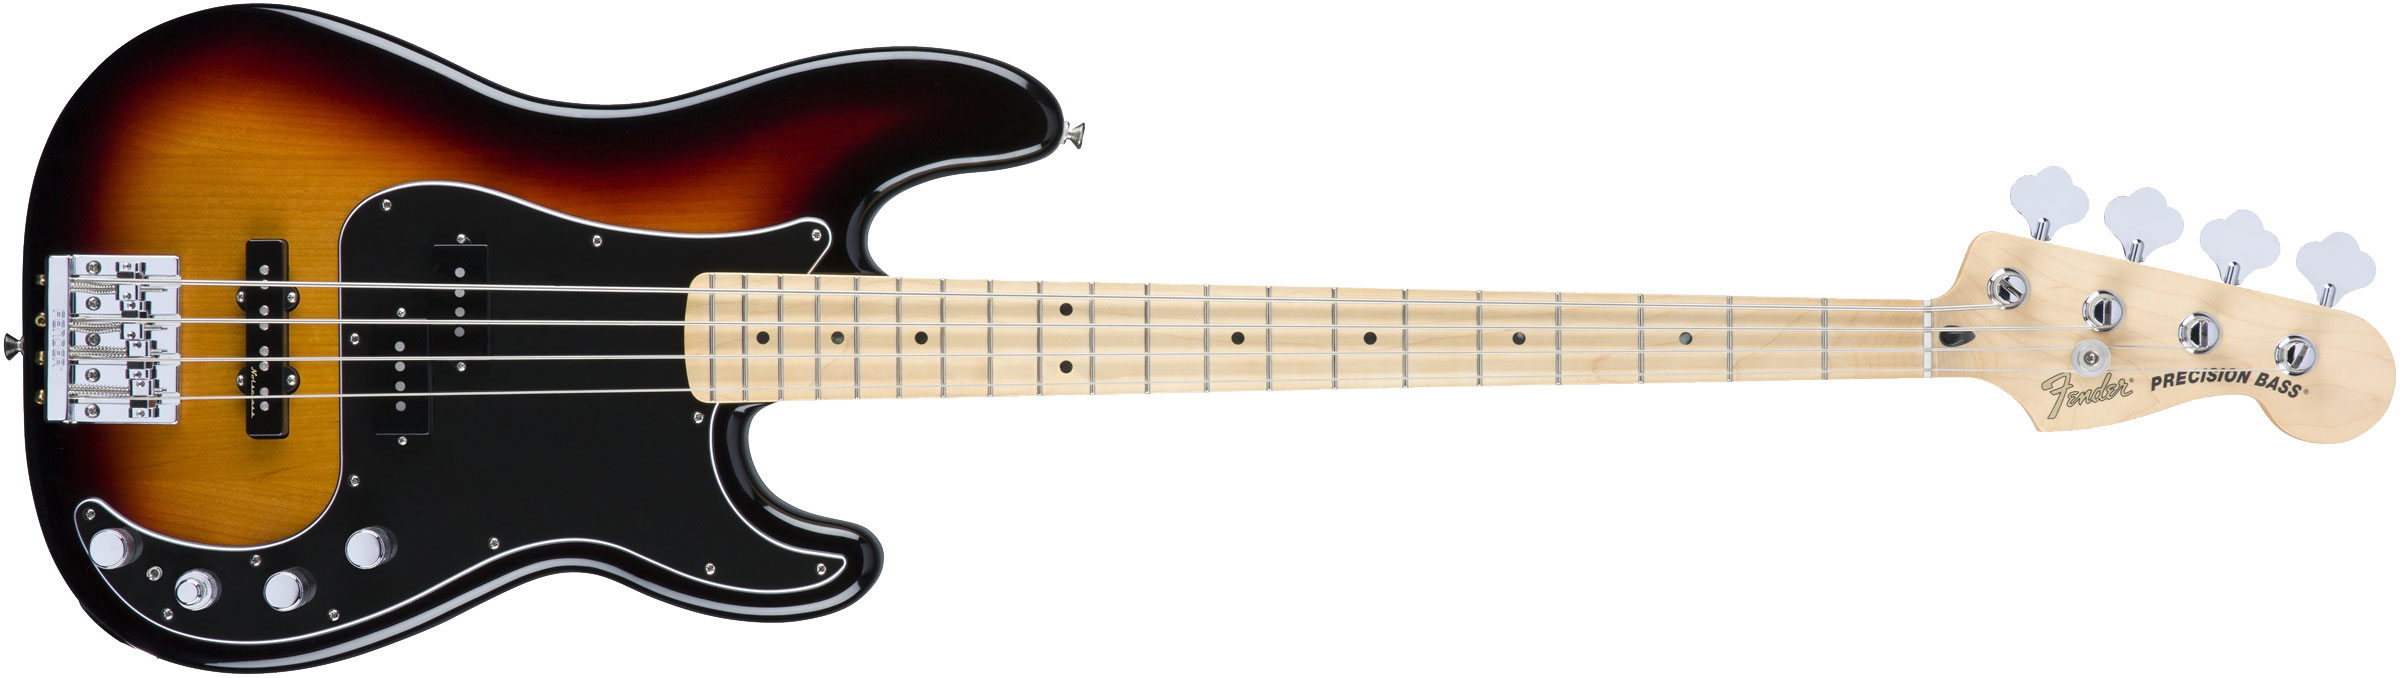 CONTRABAIXO FENDER DELUXE ACTIVE PJ BASS SPECIAL MAPLE 014-3412-300 3-COLOR SUNBURST